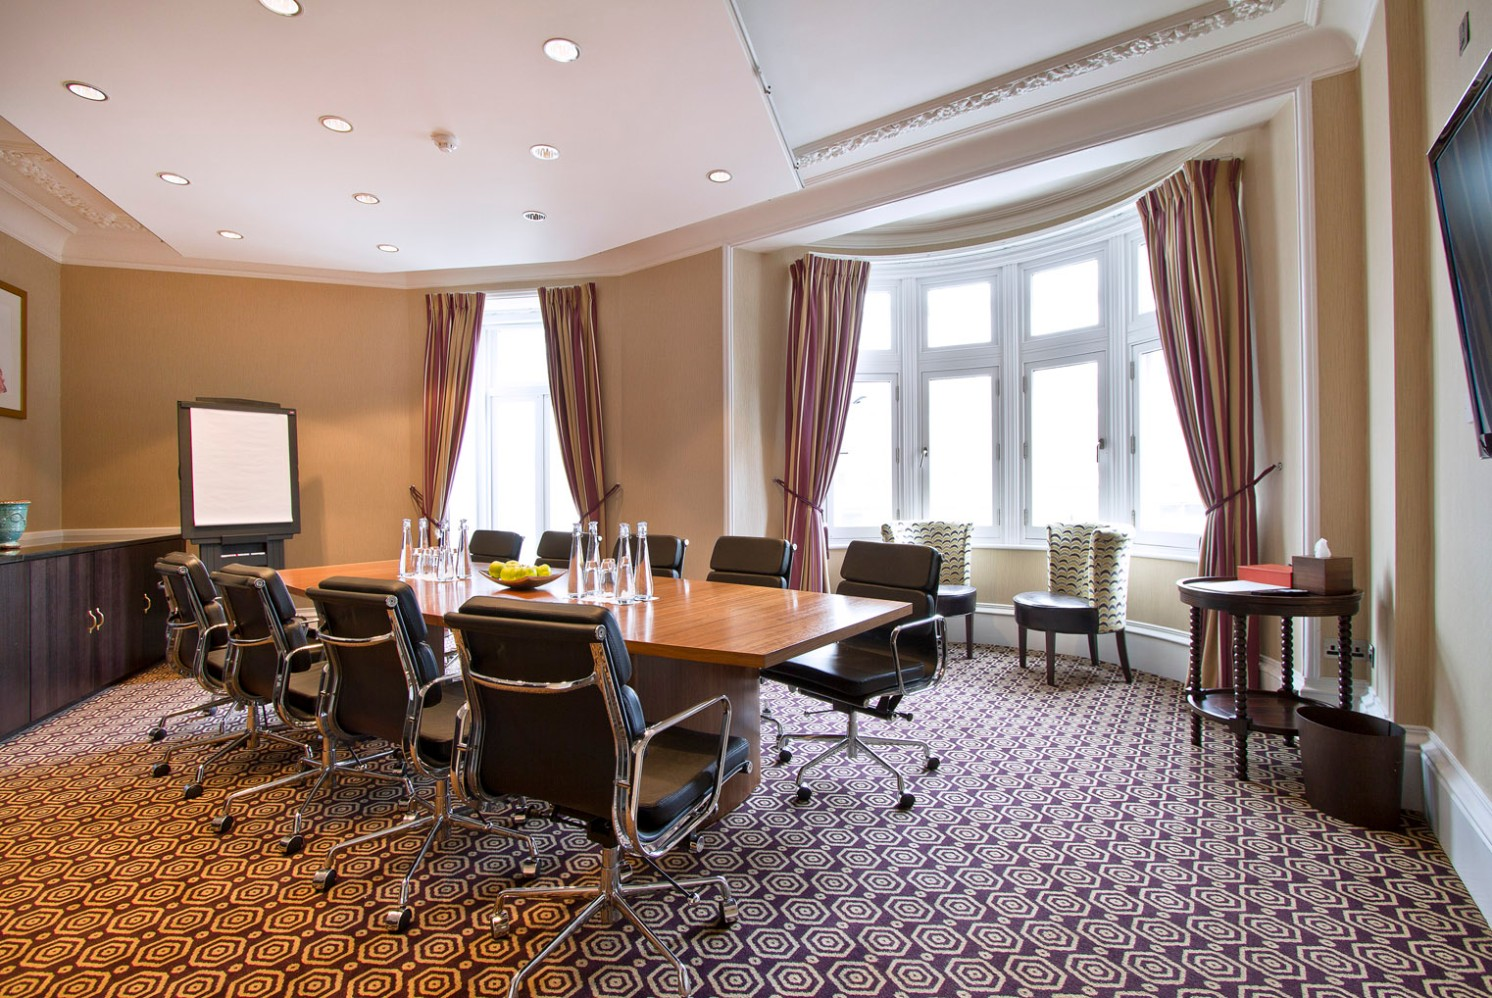 The Regal Boardroom at St Ermin's Hotel is just a short walk from this impressive meeting space.